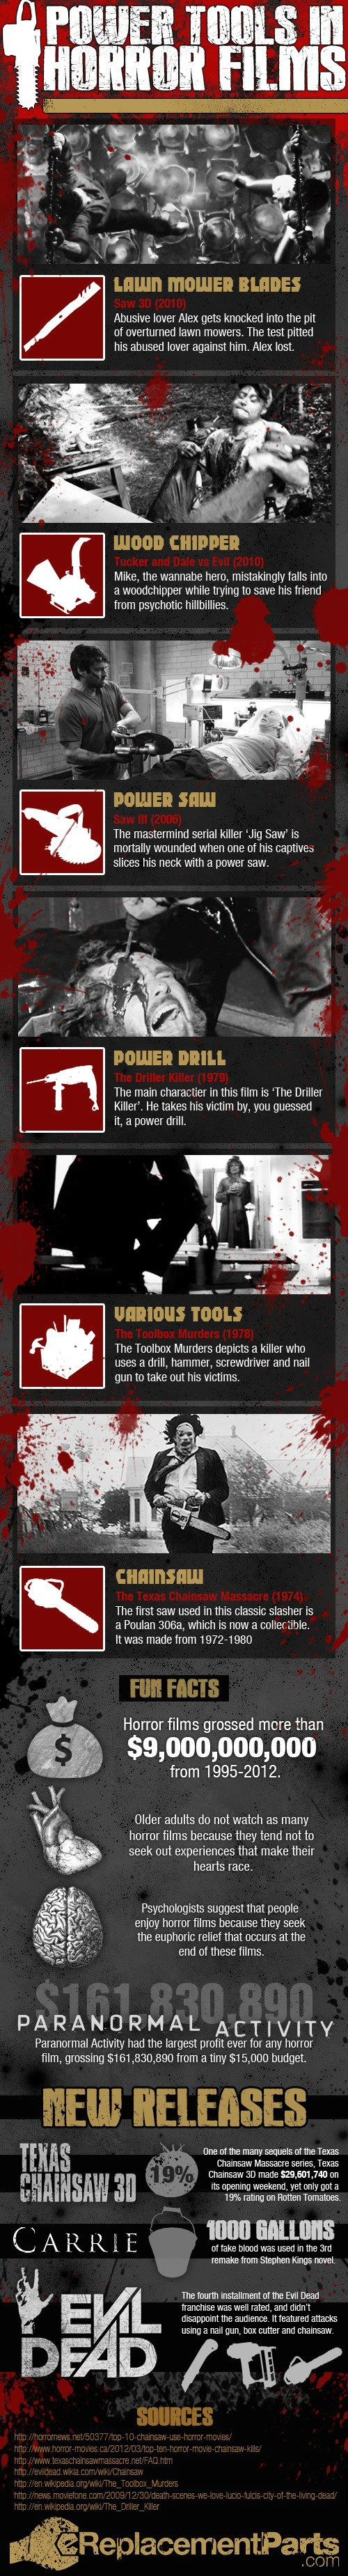 Power Tools in Horror Films [Infographic]